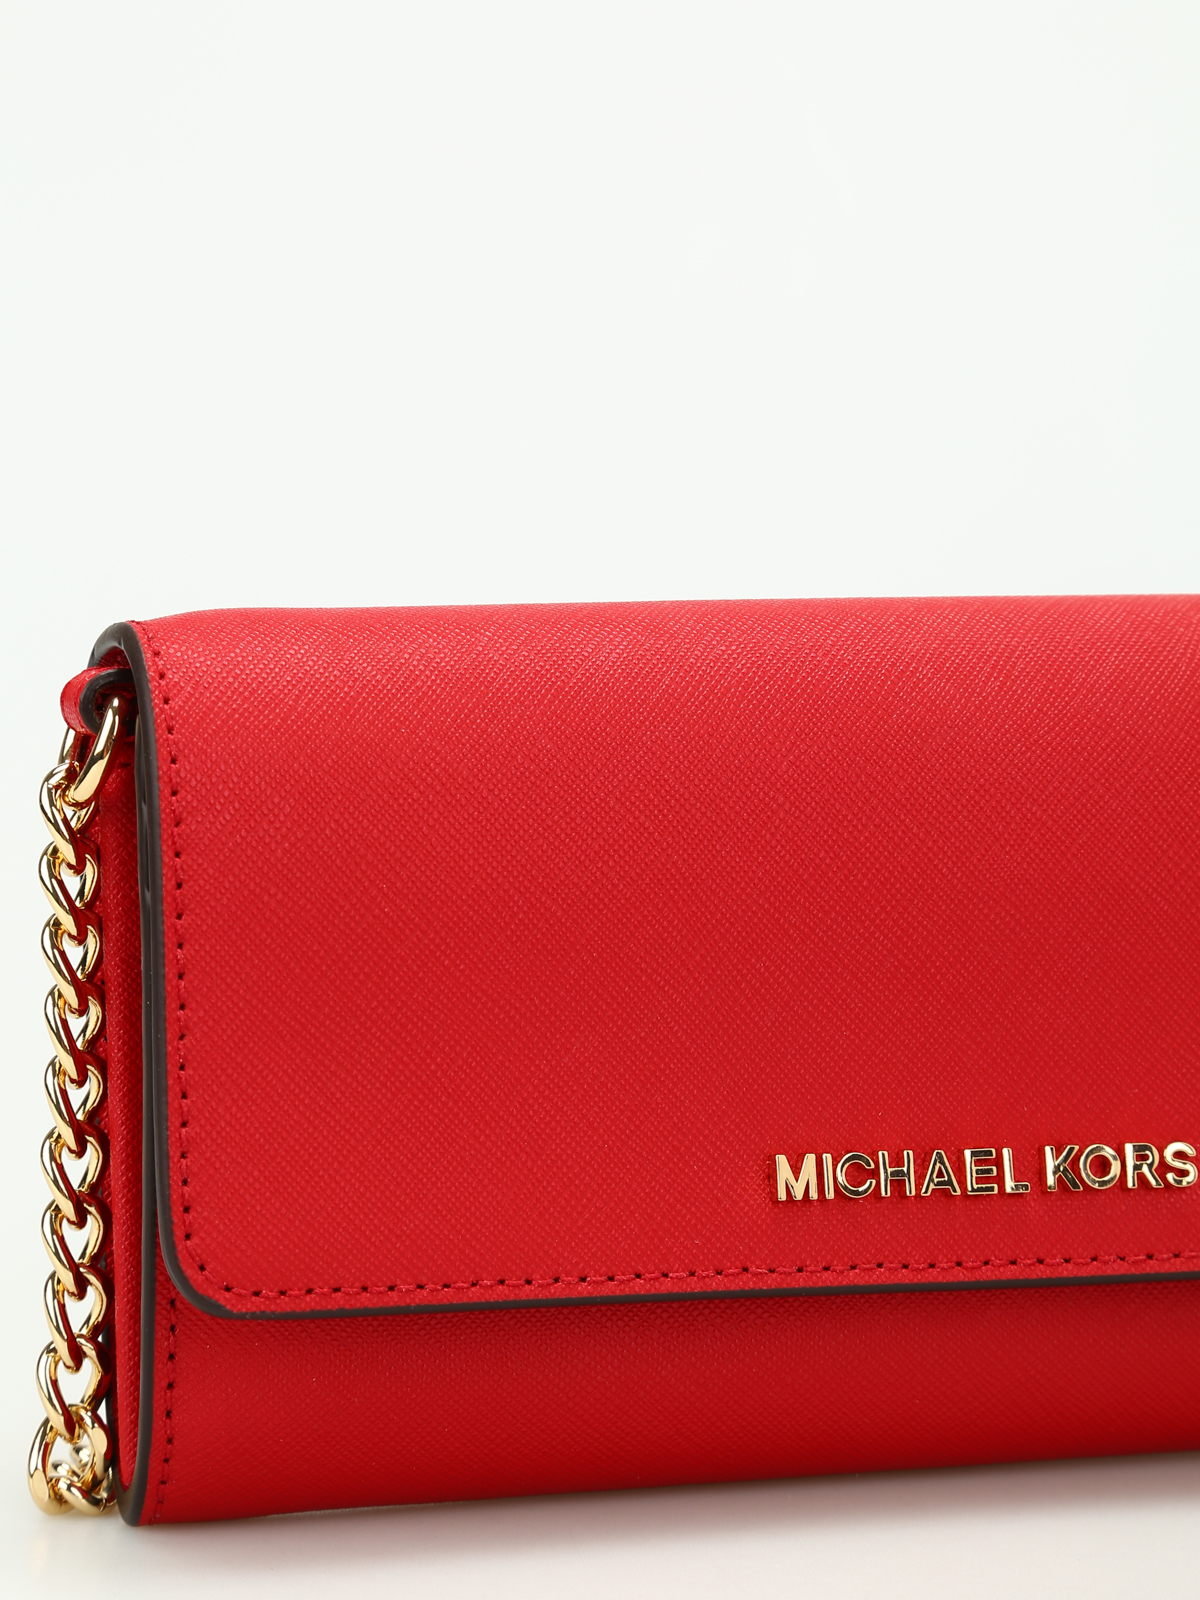 Michael kors online shopping